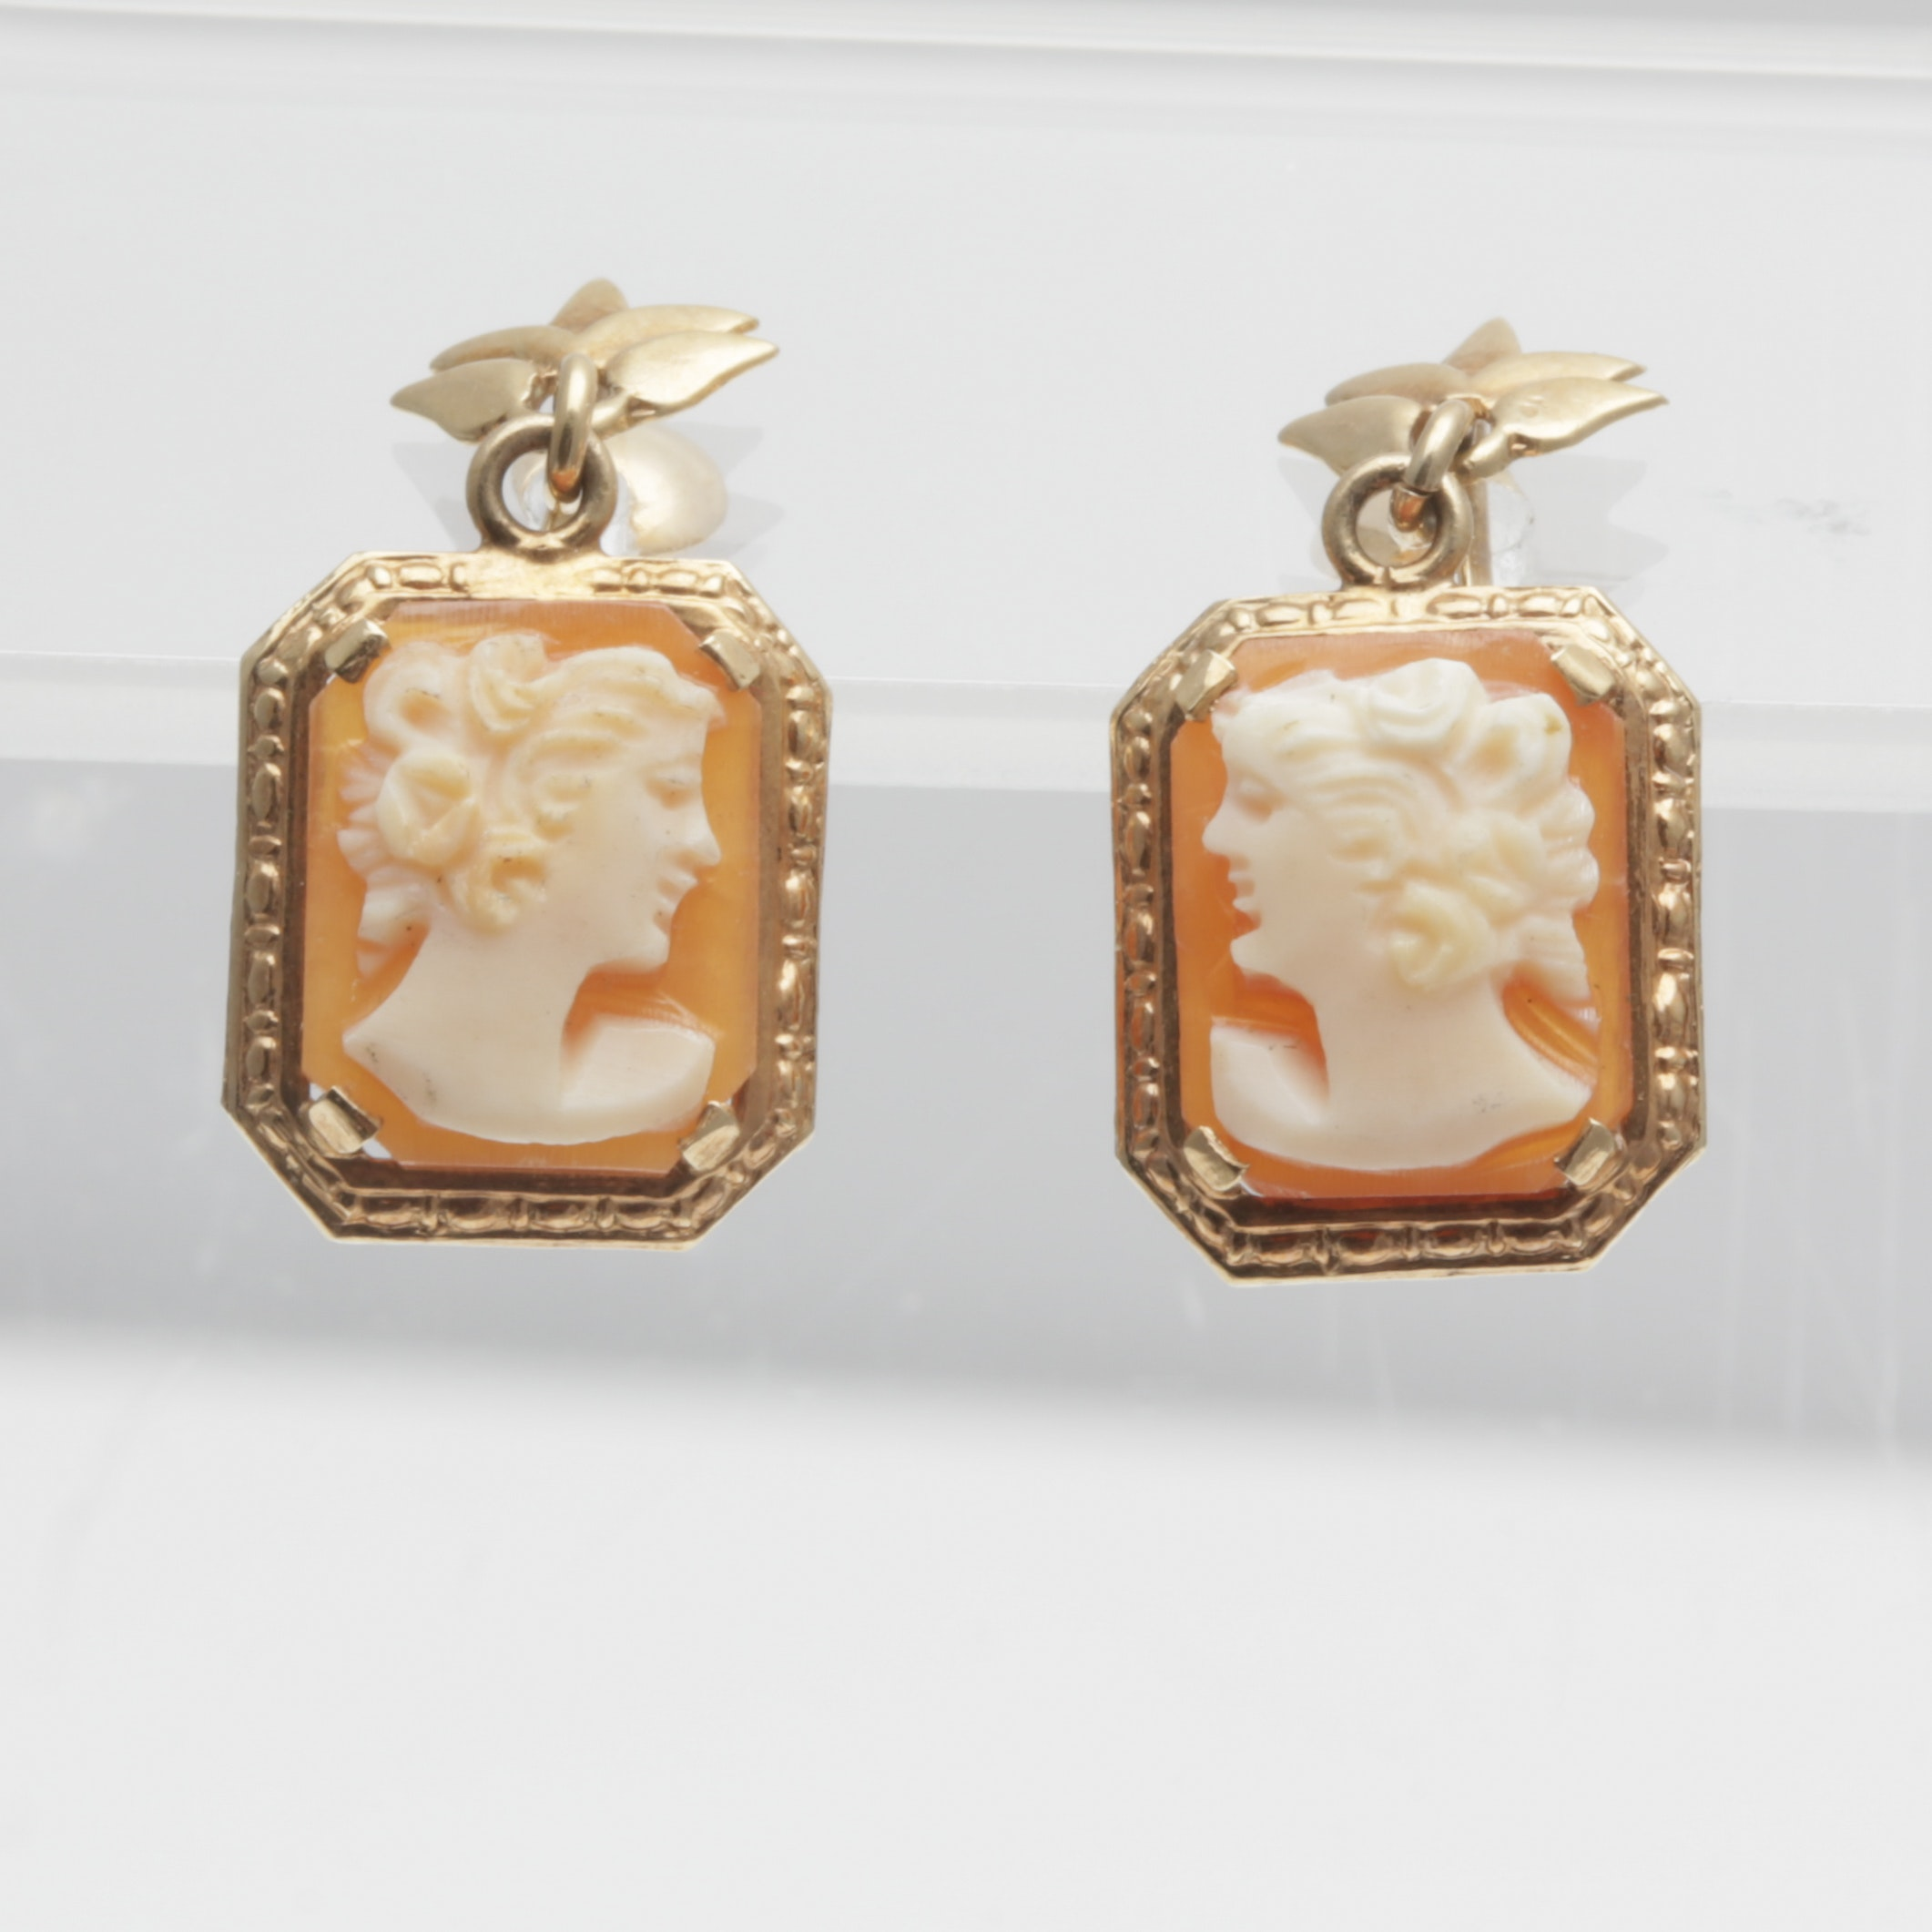 10K Yellow Gold Vintage Hand Carved Cameo Screw Back Earrings